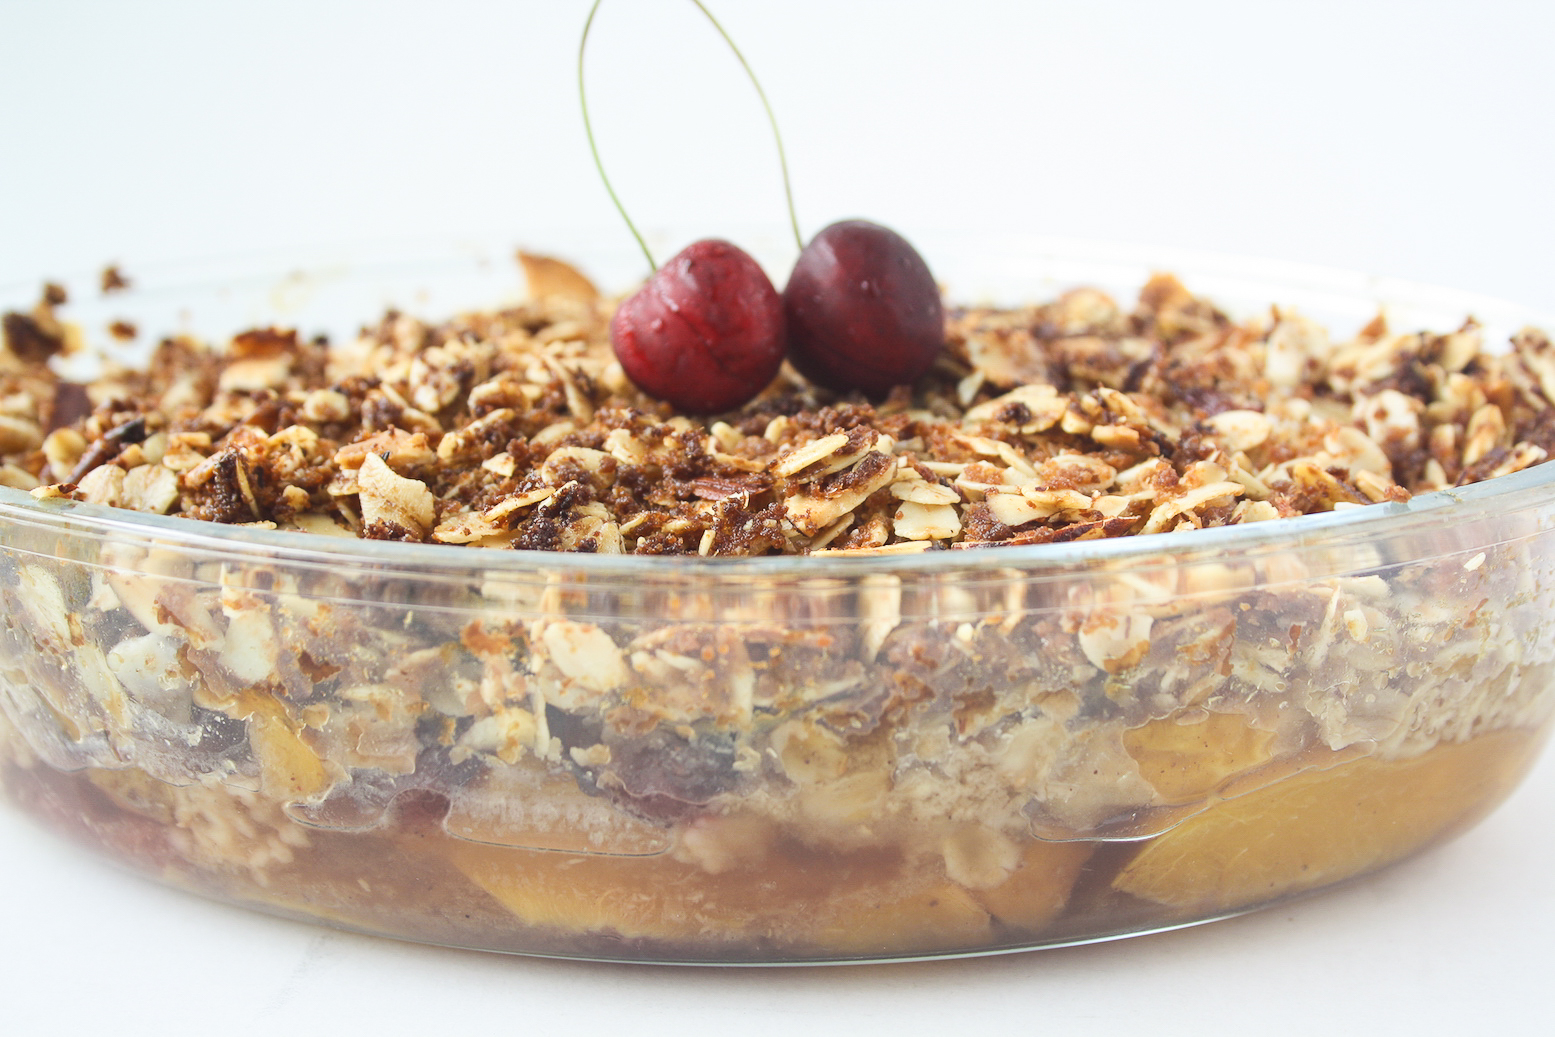 Inspiring Vegan Dishes That Will Taste You This Season-Fresh peaches and cherries with a delicious coconut oat topping make this vegan, gluten-free crisp the perfect summer dessert!